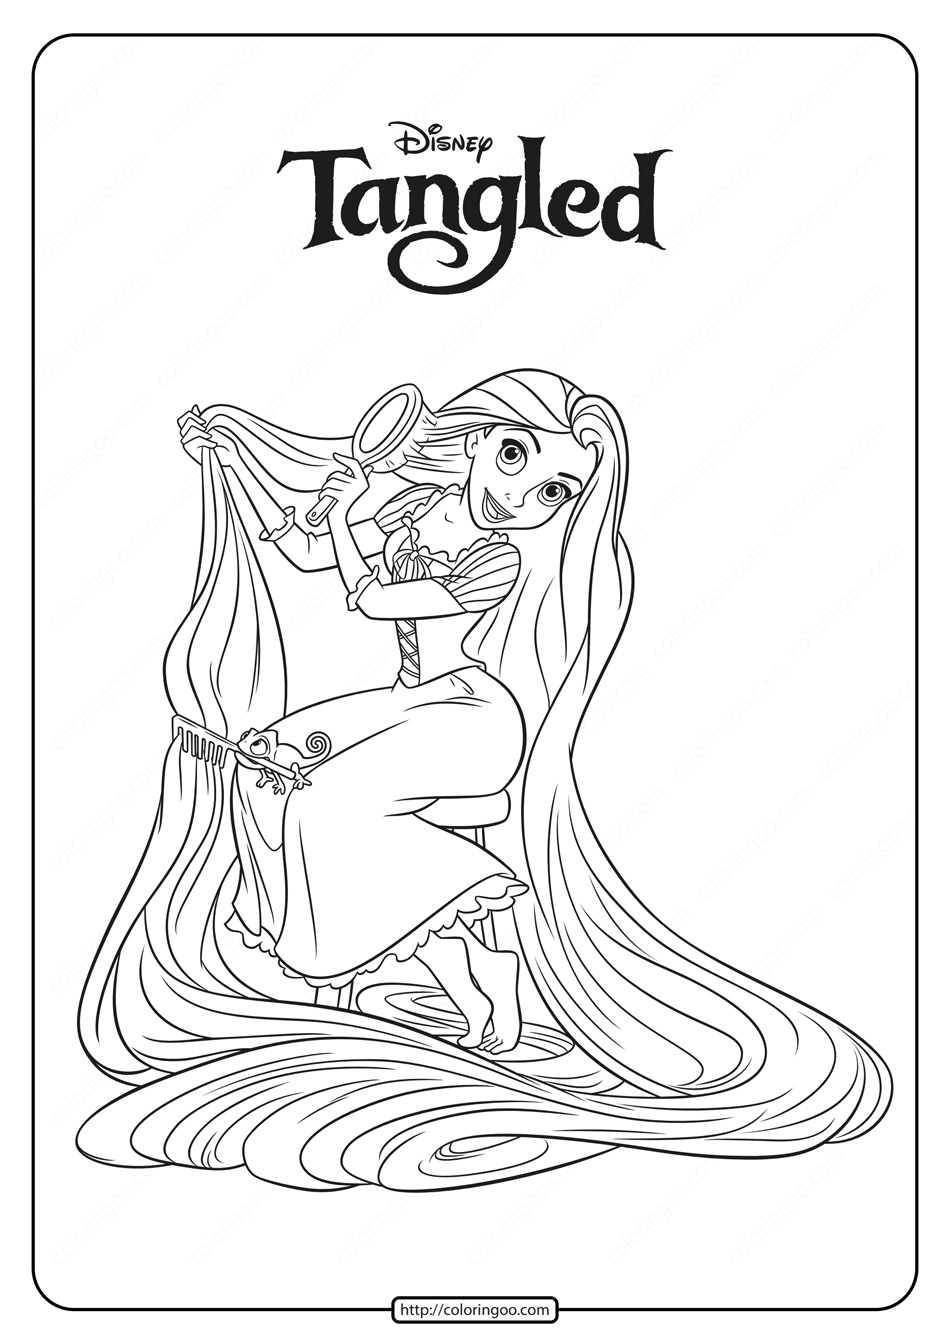 Free Printable Princess Rapunzel Coloring Pages